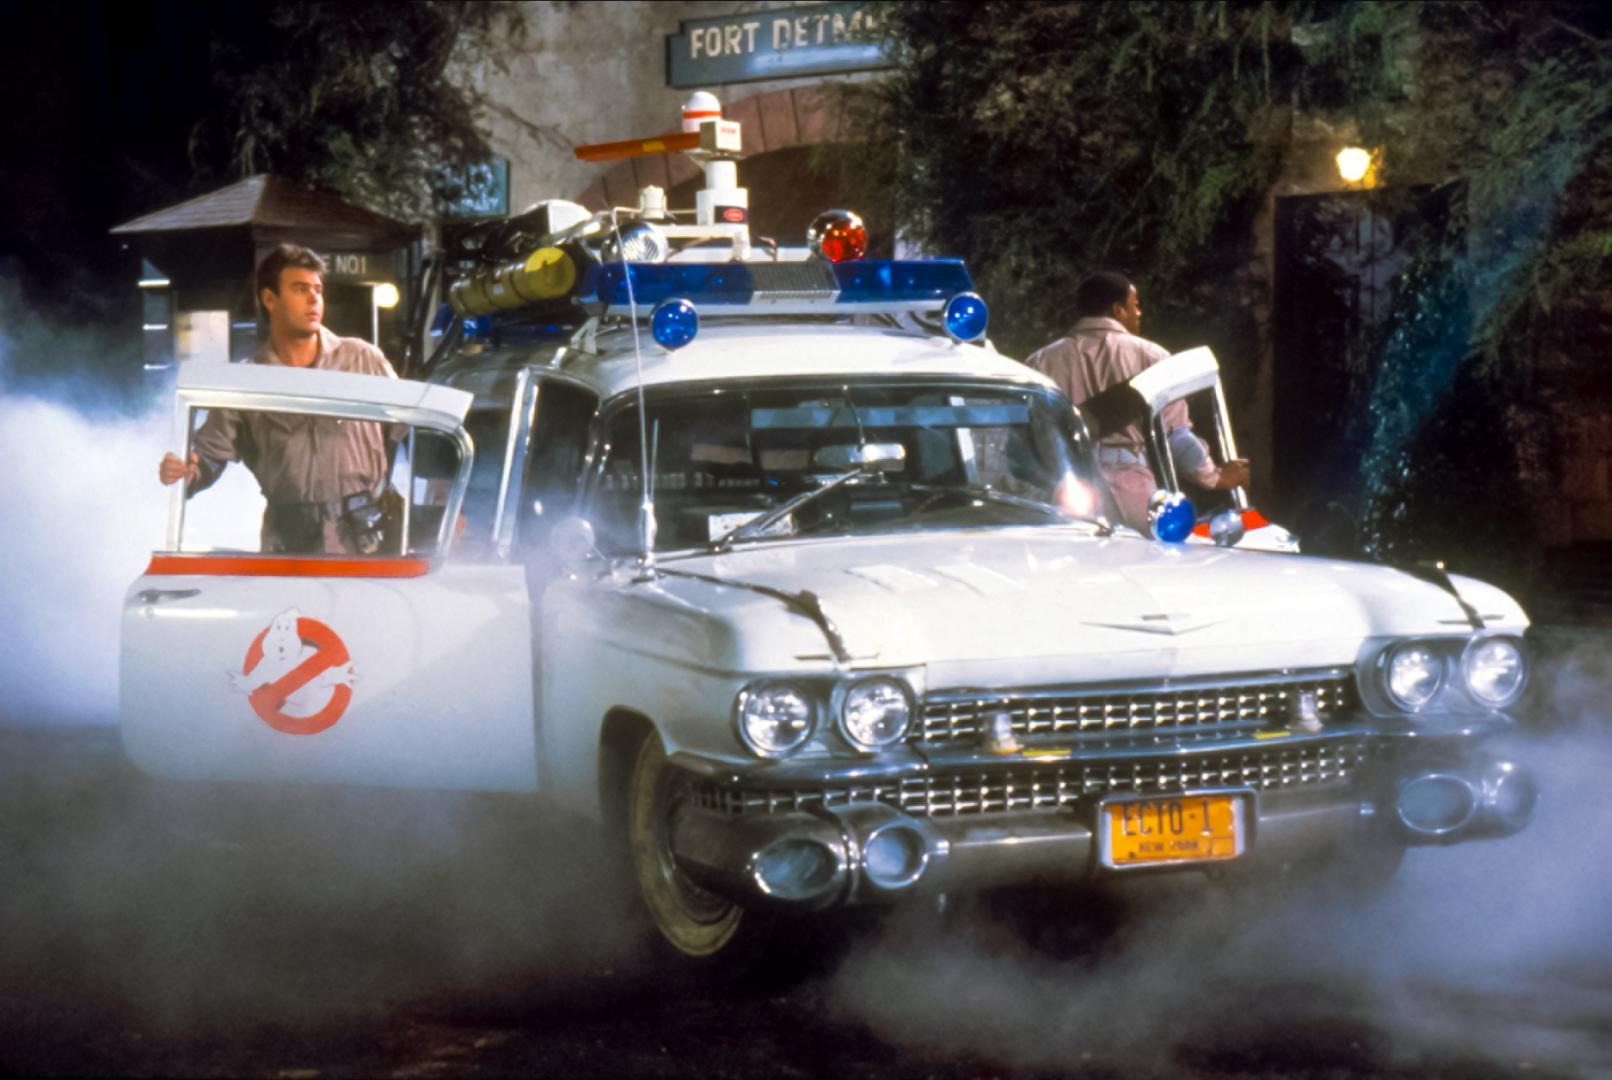 Ghostbusters Ecto-1 Cadillac Miller-Meteor